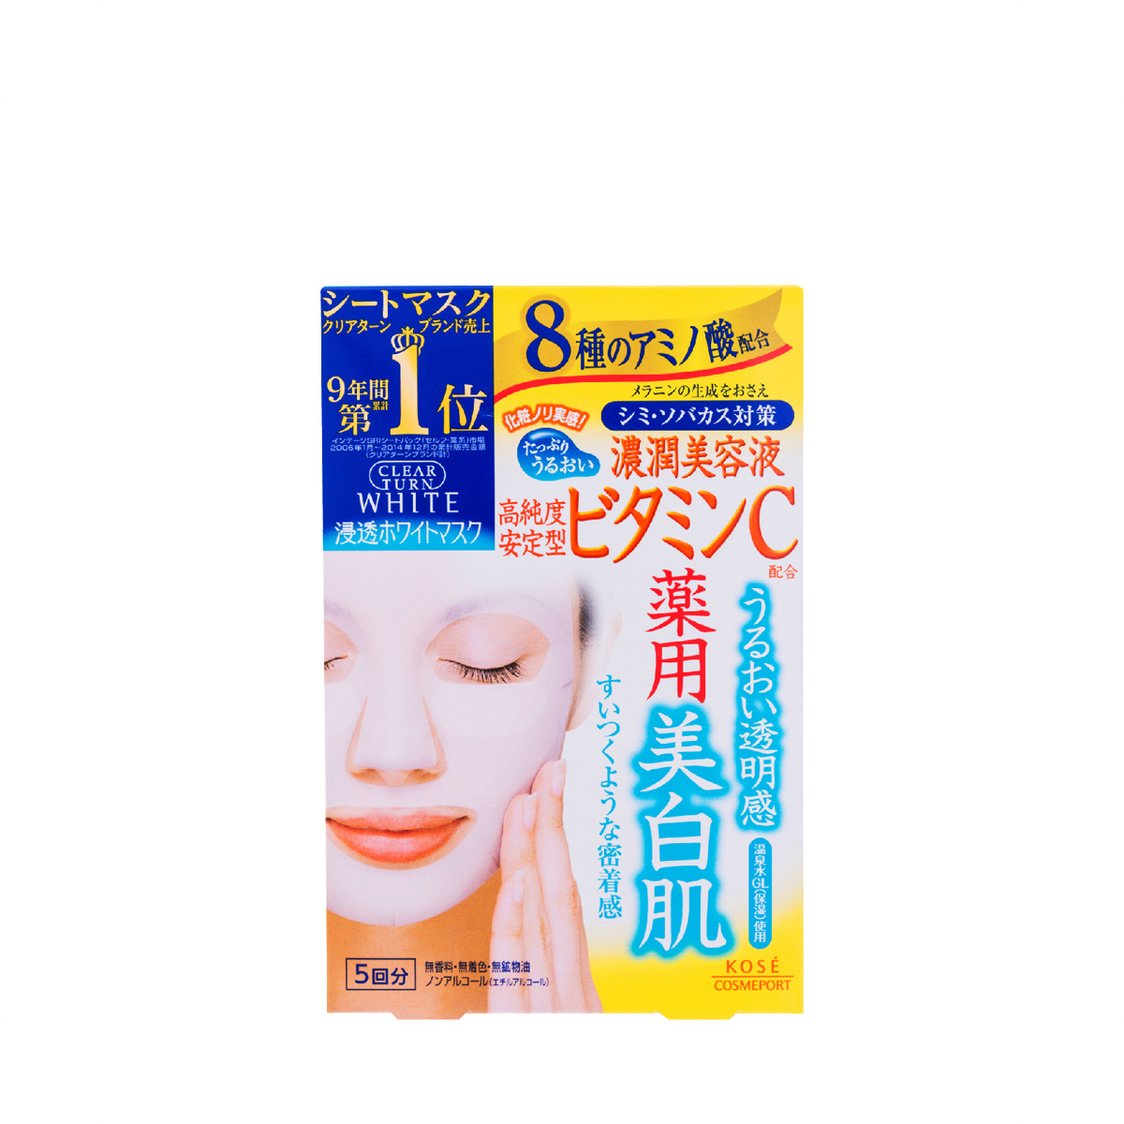 Clear TurnWhiteMask Vitamin C D